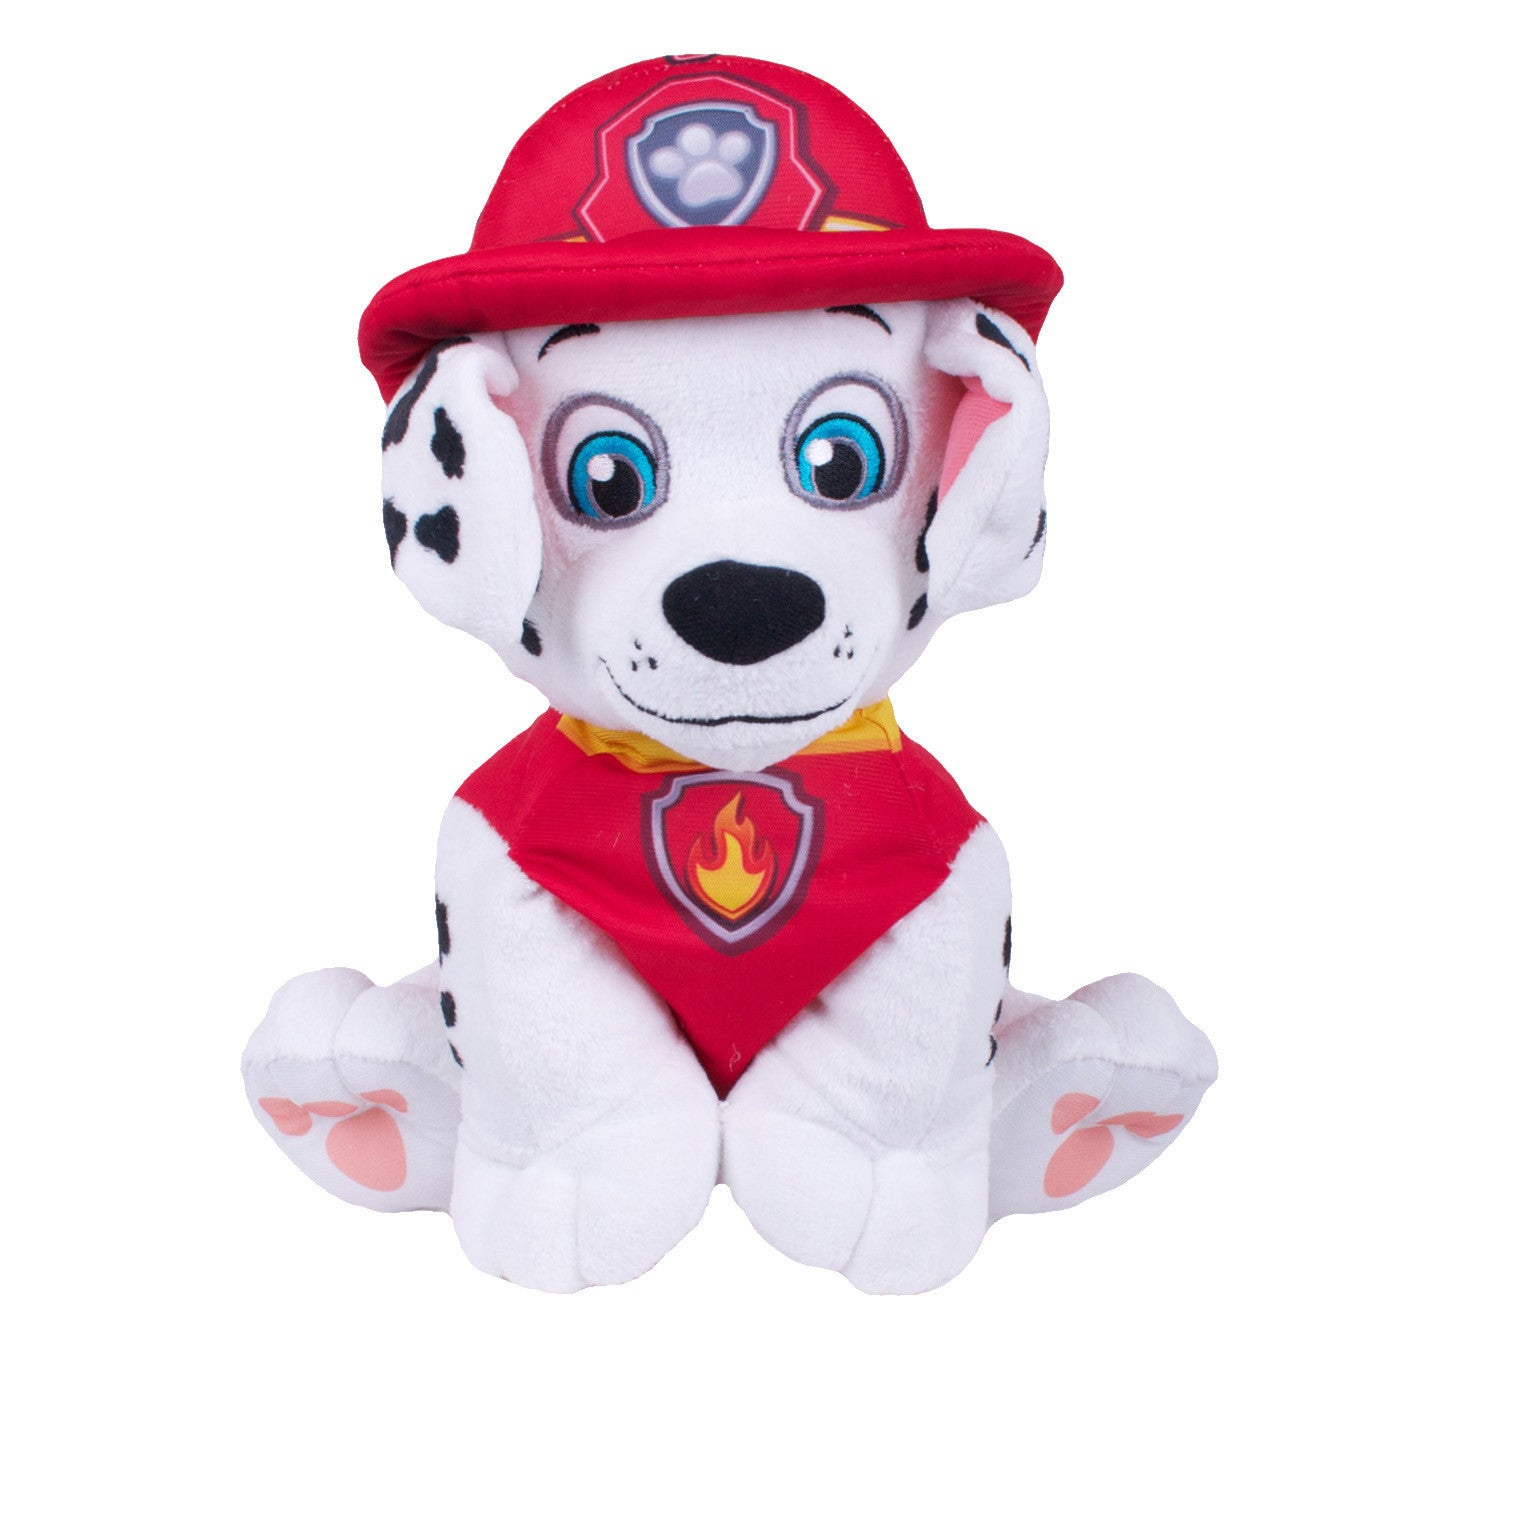 Paw Patrol Marshall Plush Toy Front